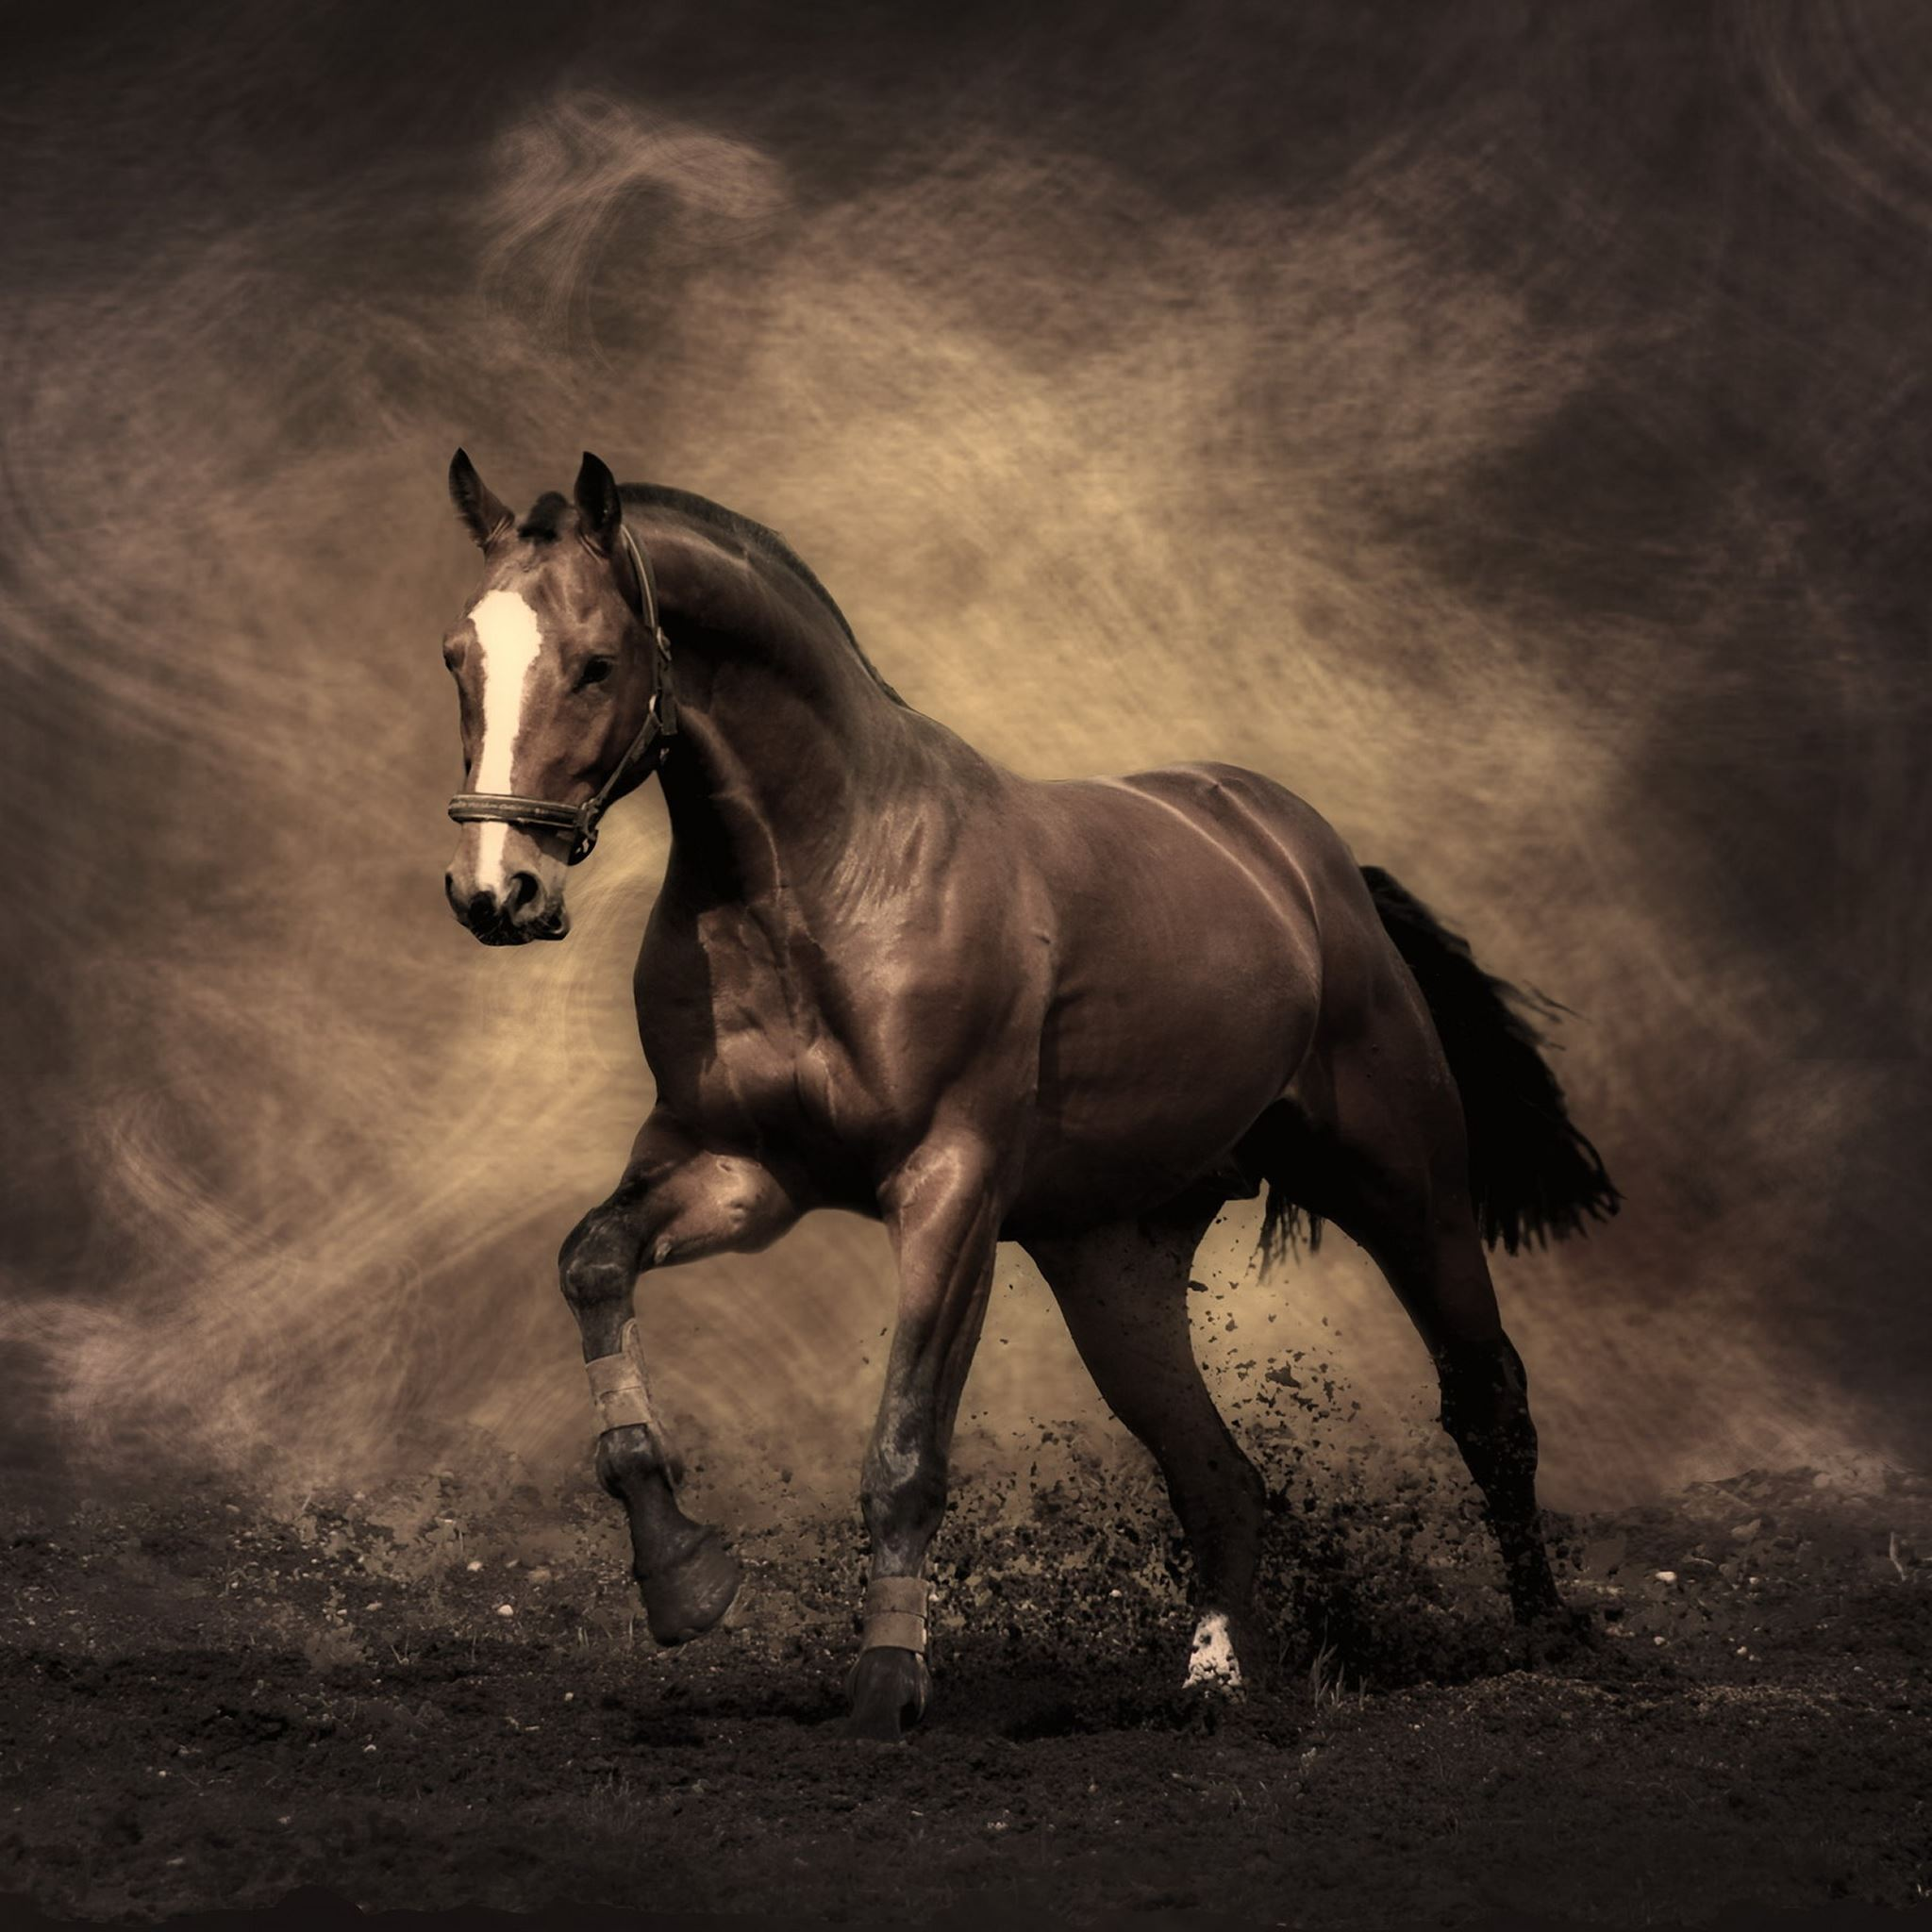 Best Horse Ipad Air Wallpapers Hd Ilikewallpaper